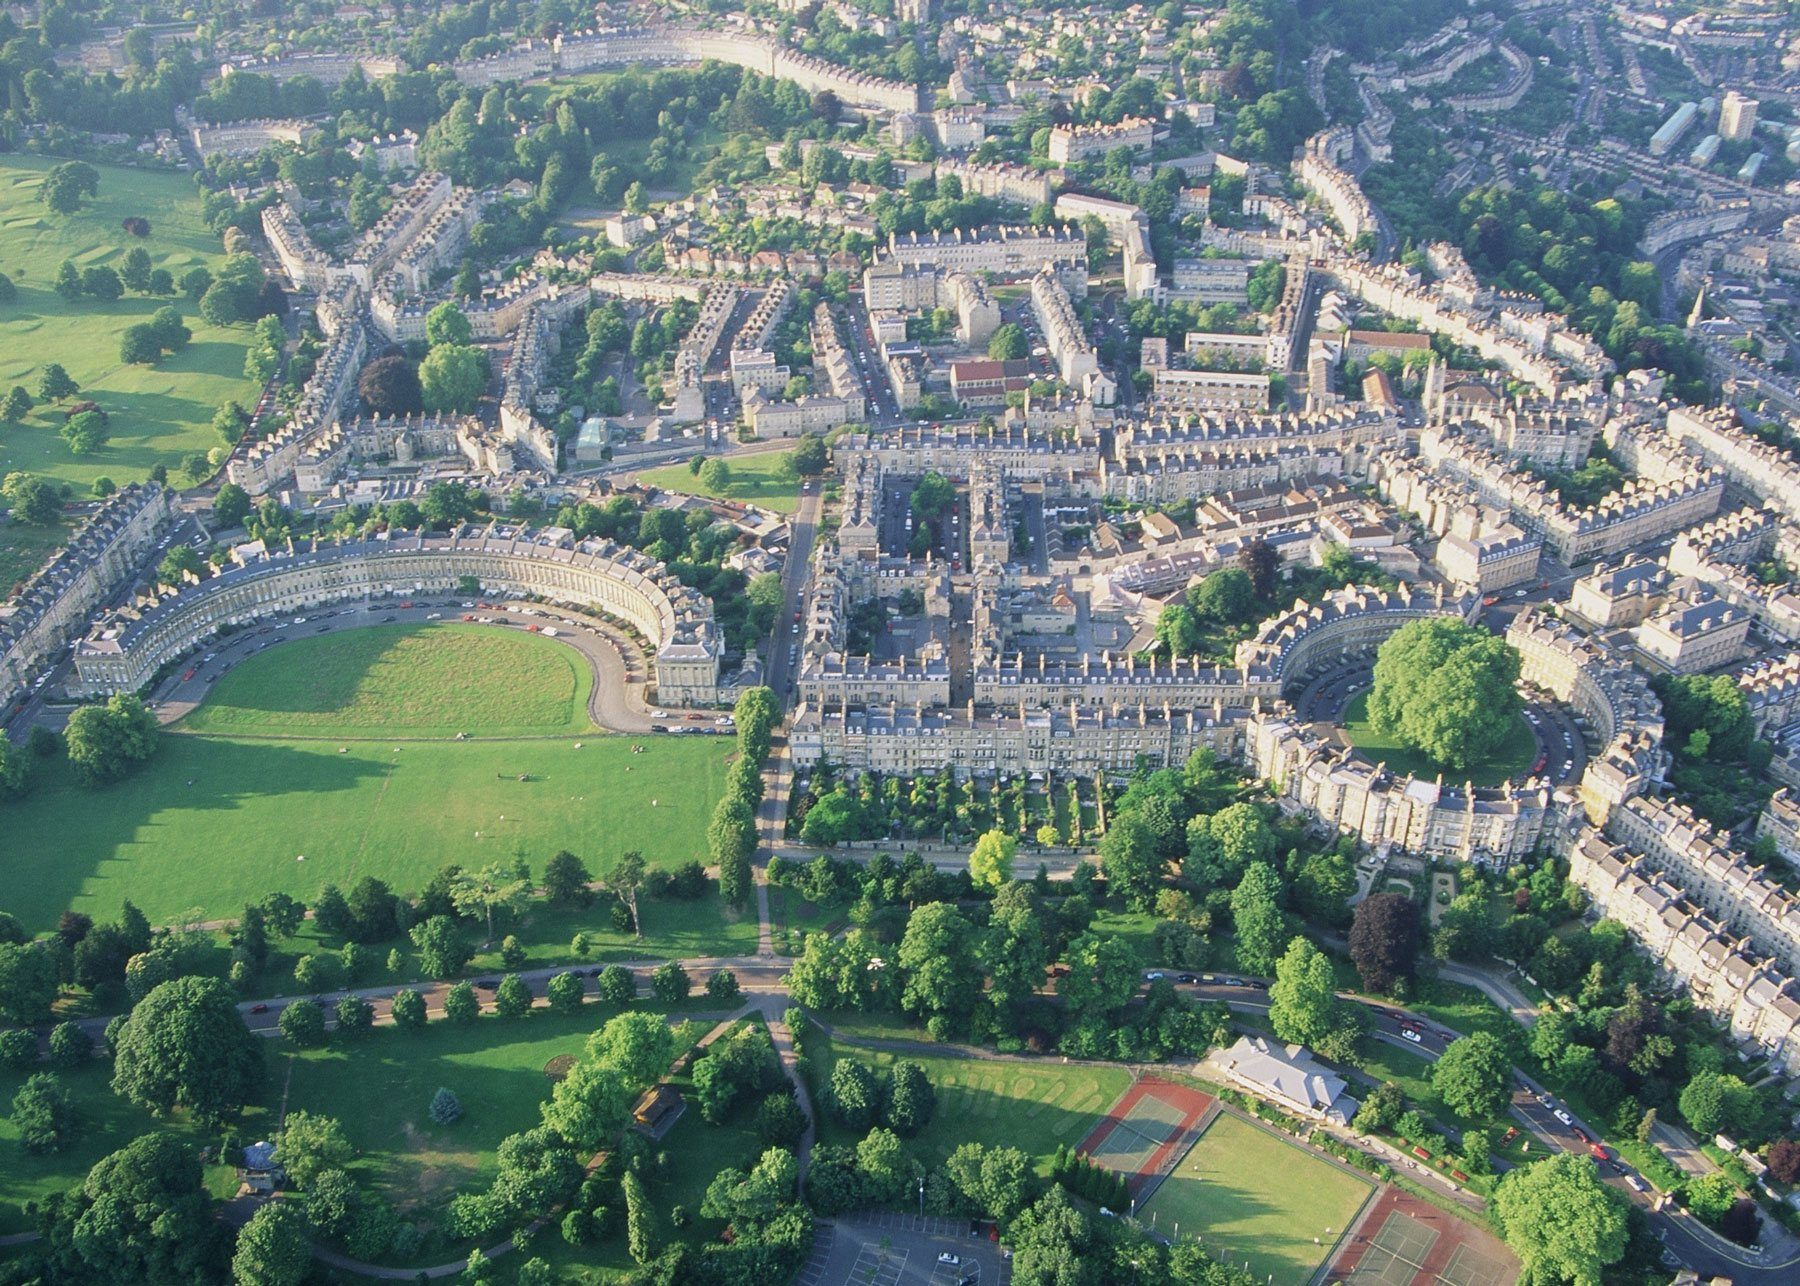 Interior Bath Images world heritage site bath welcome to the 18th century town planning